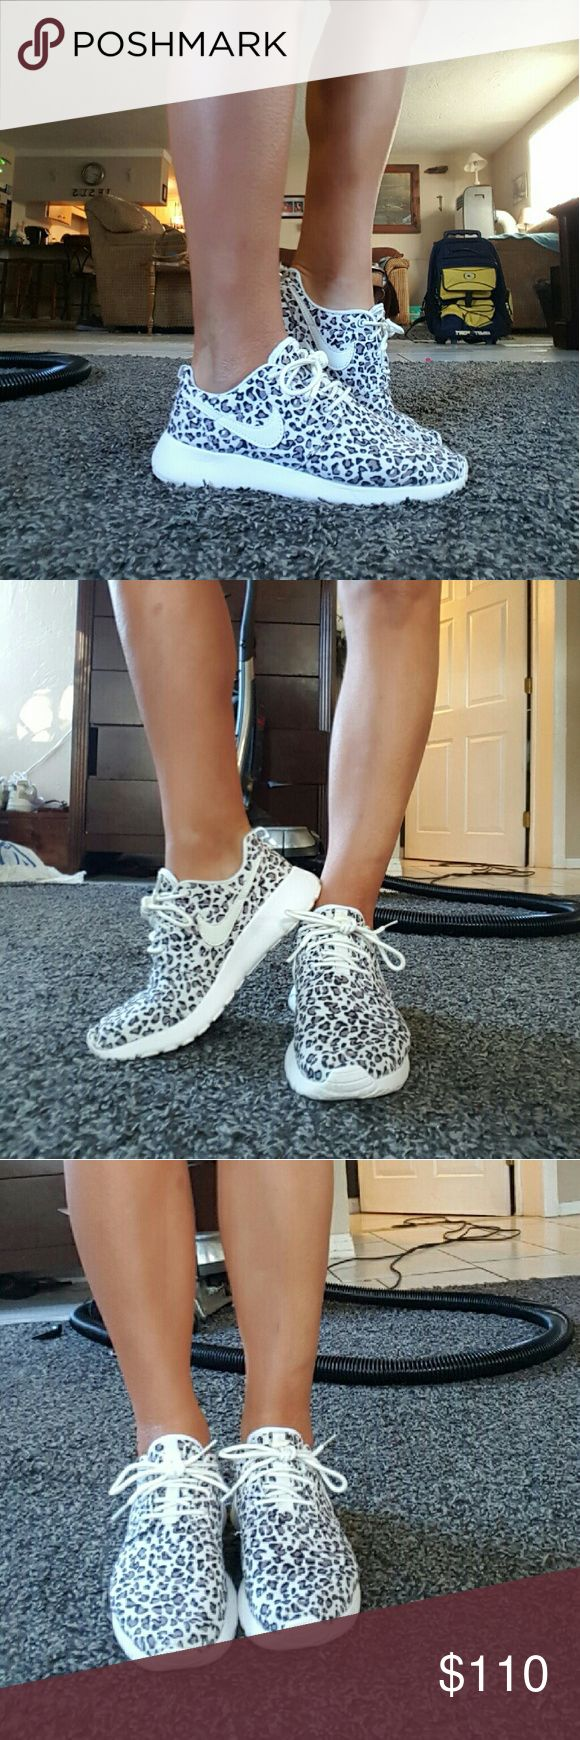 Rare leopard Nike Roshes Rare leopard Nike Roshe shoes size 8 worn only a couple of times absolutely no flaws 100% authentic Nike nike Shoes Athletic Shoes